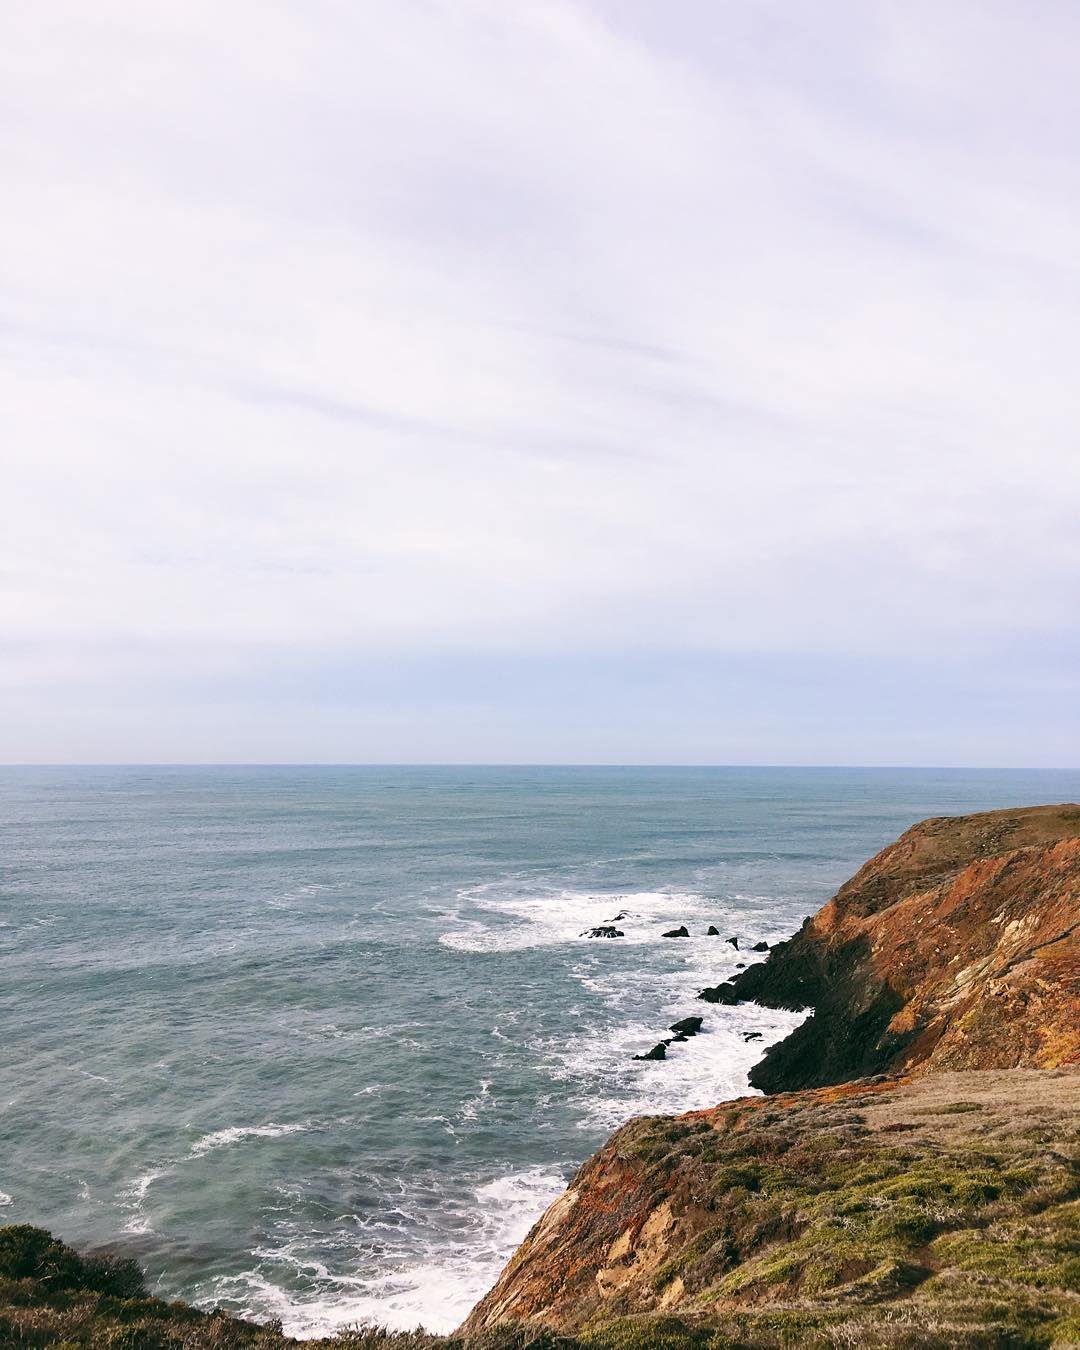 View from yesterday's hike in the Marin Headlands with @tberolz @laurentaylorcreates #weekendmoments #willjourney #marinheadlands